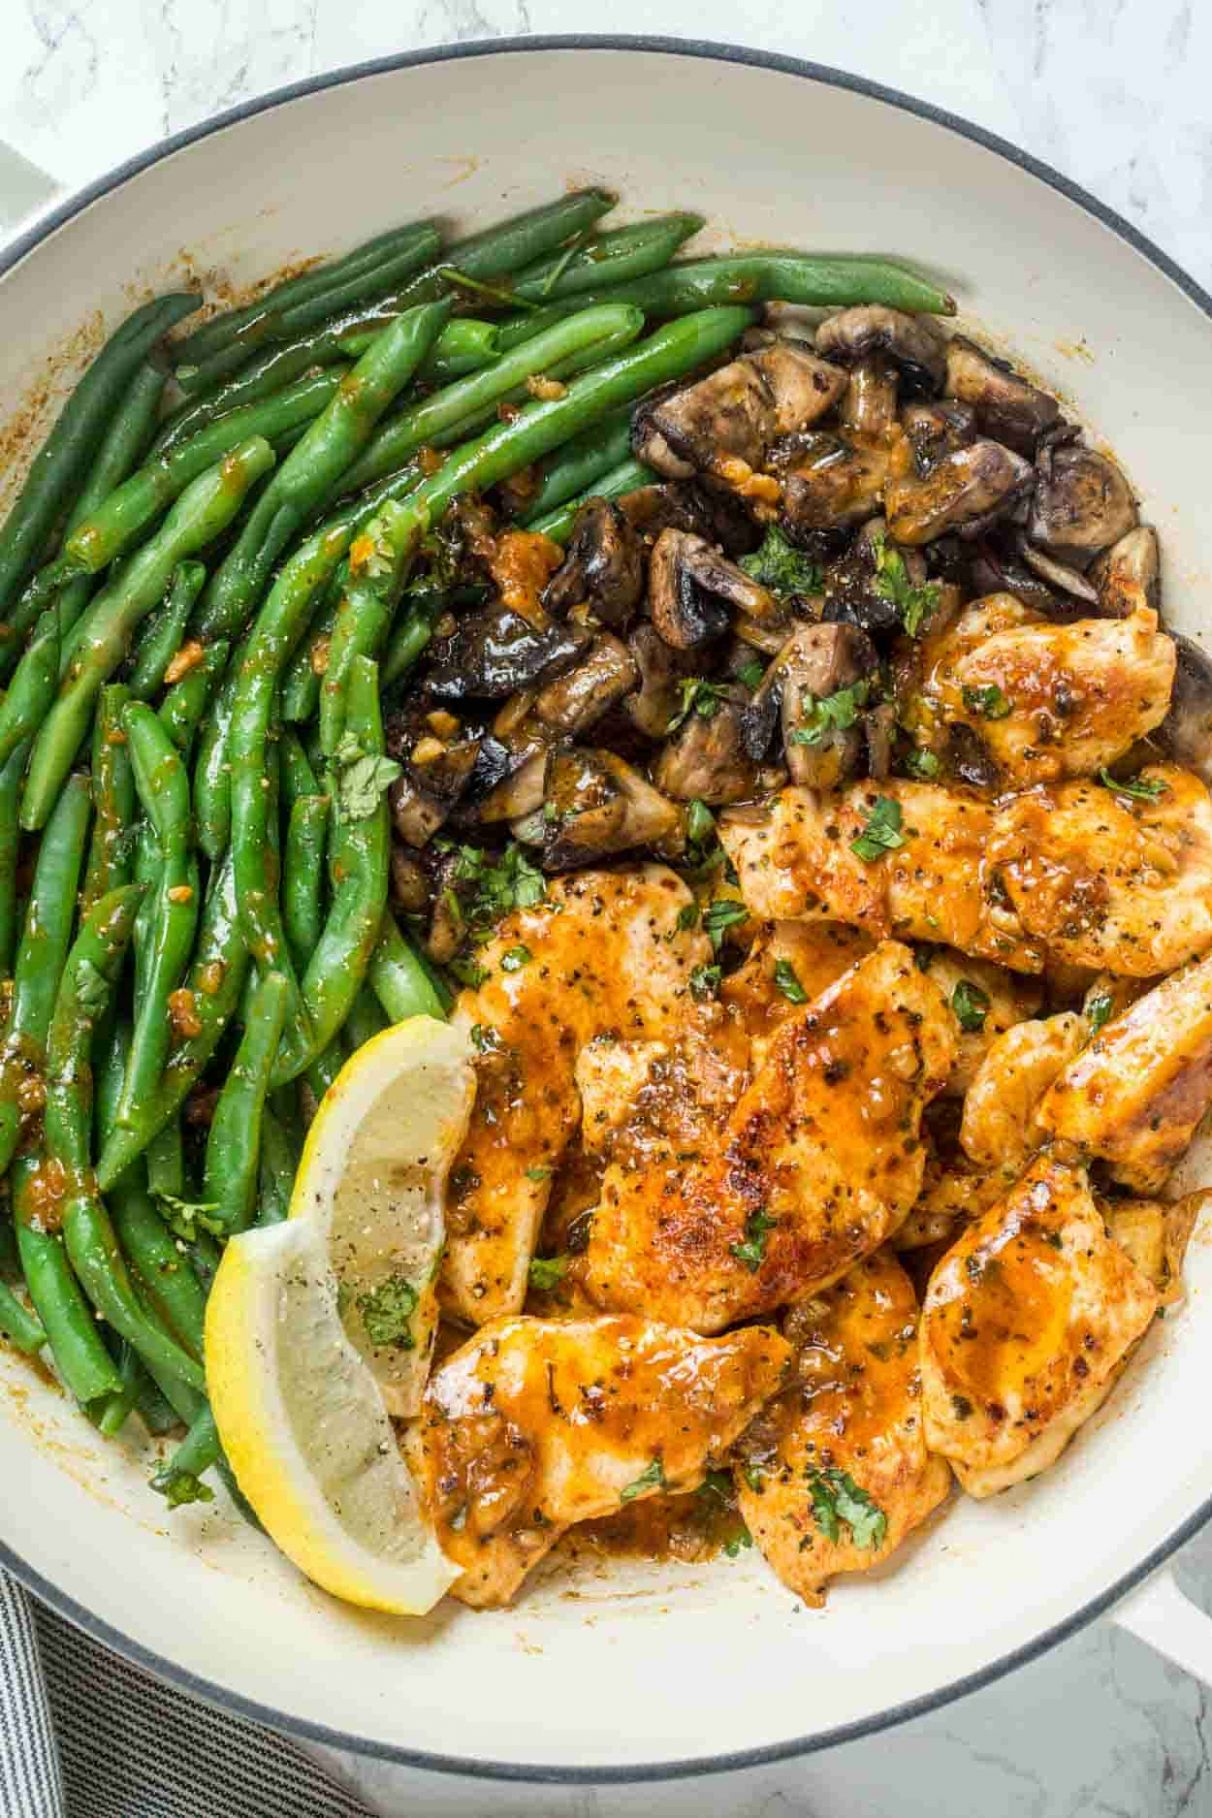 9 Minute One Pan Lemon Chicken Breast - Recipes With Chicken Breast For One